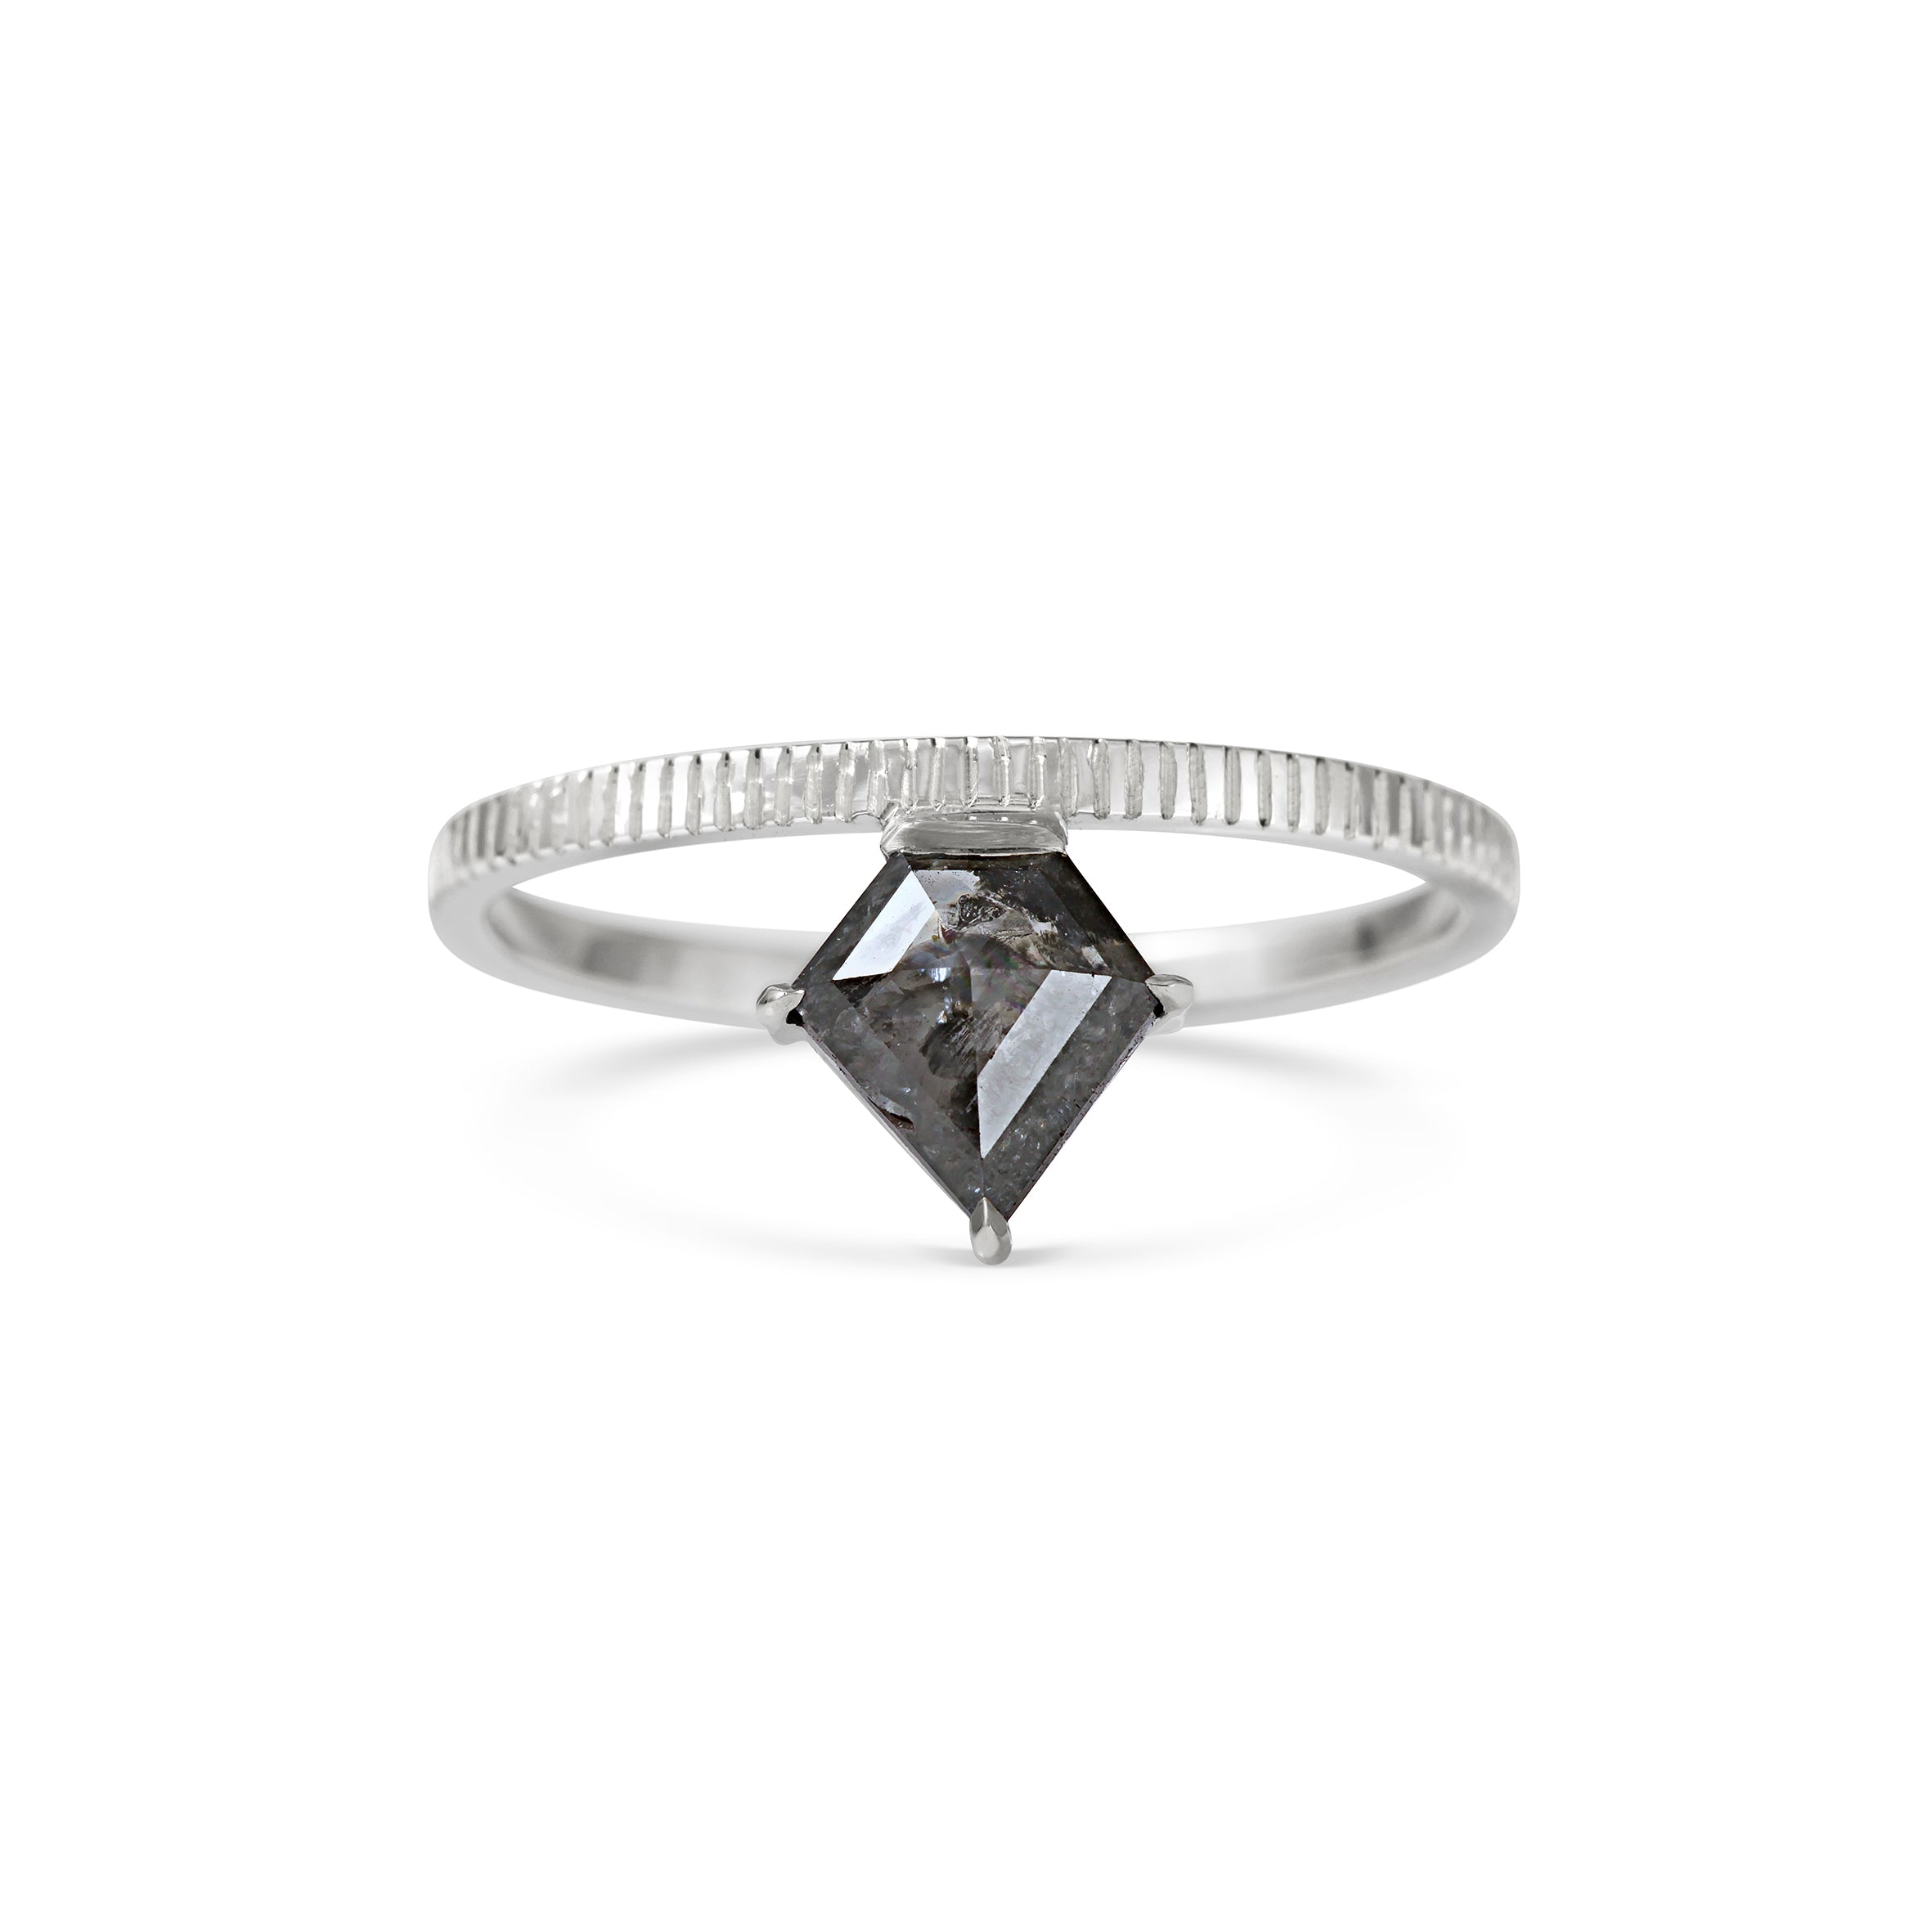 Grey Shield Cut Diamond with Hand Engraved band